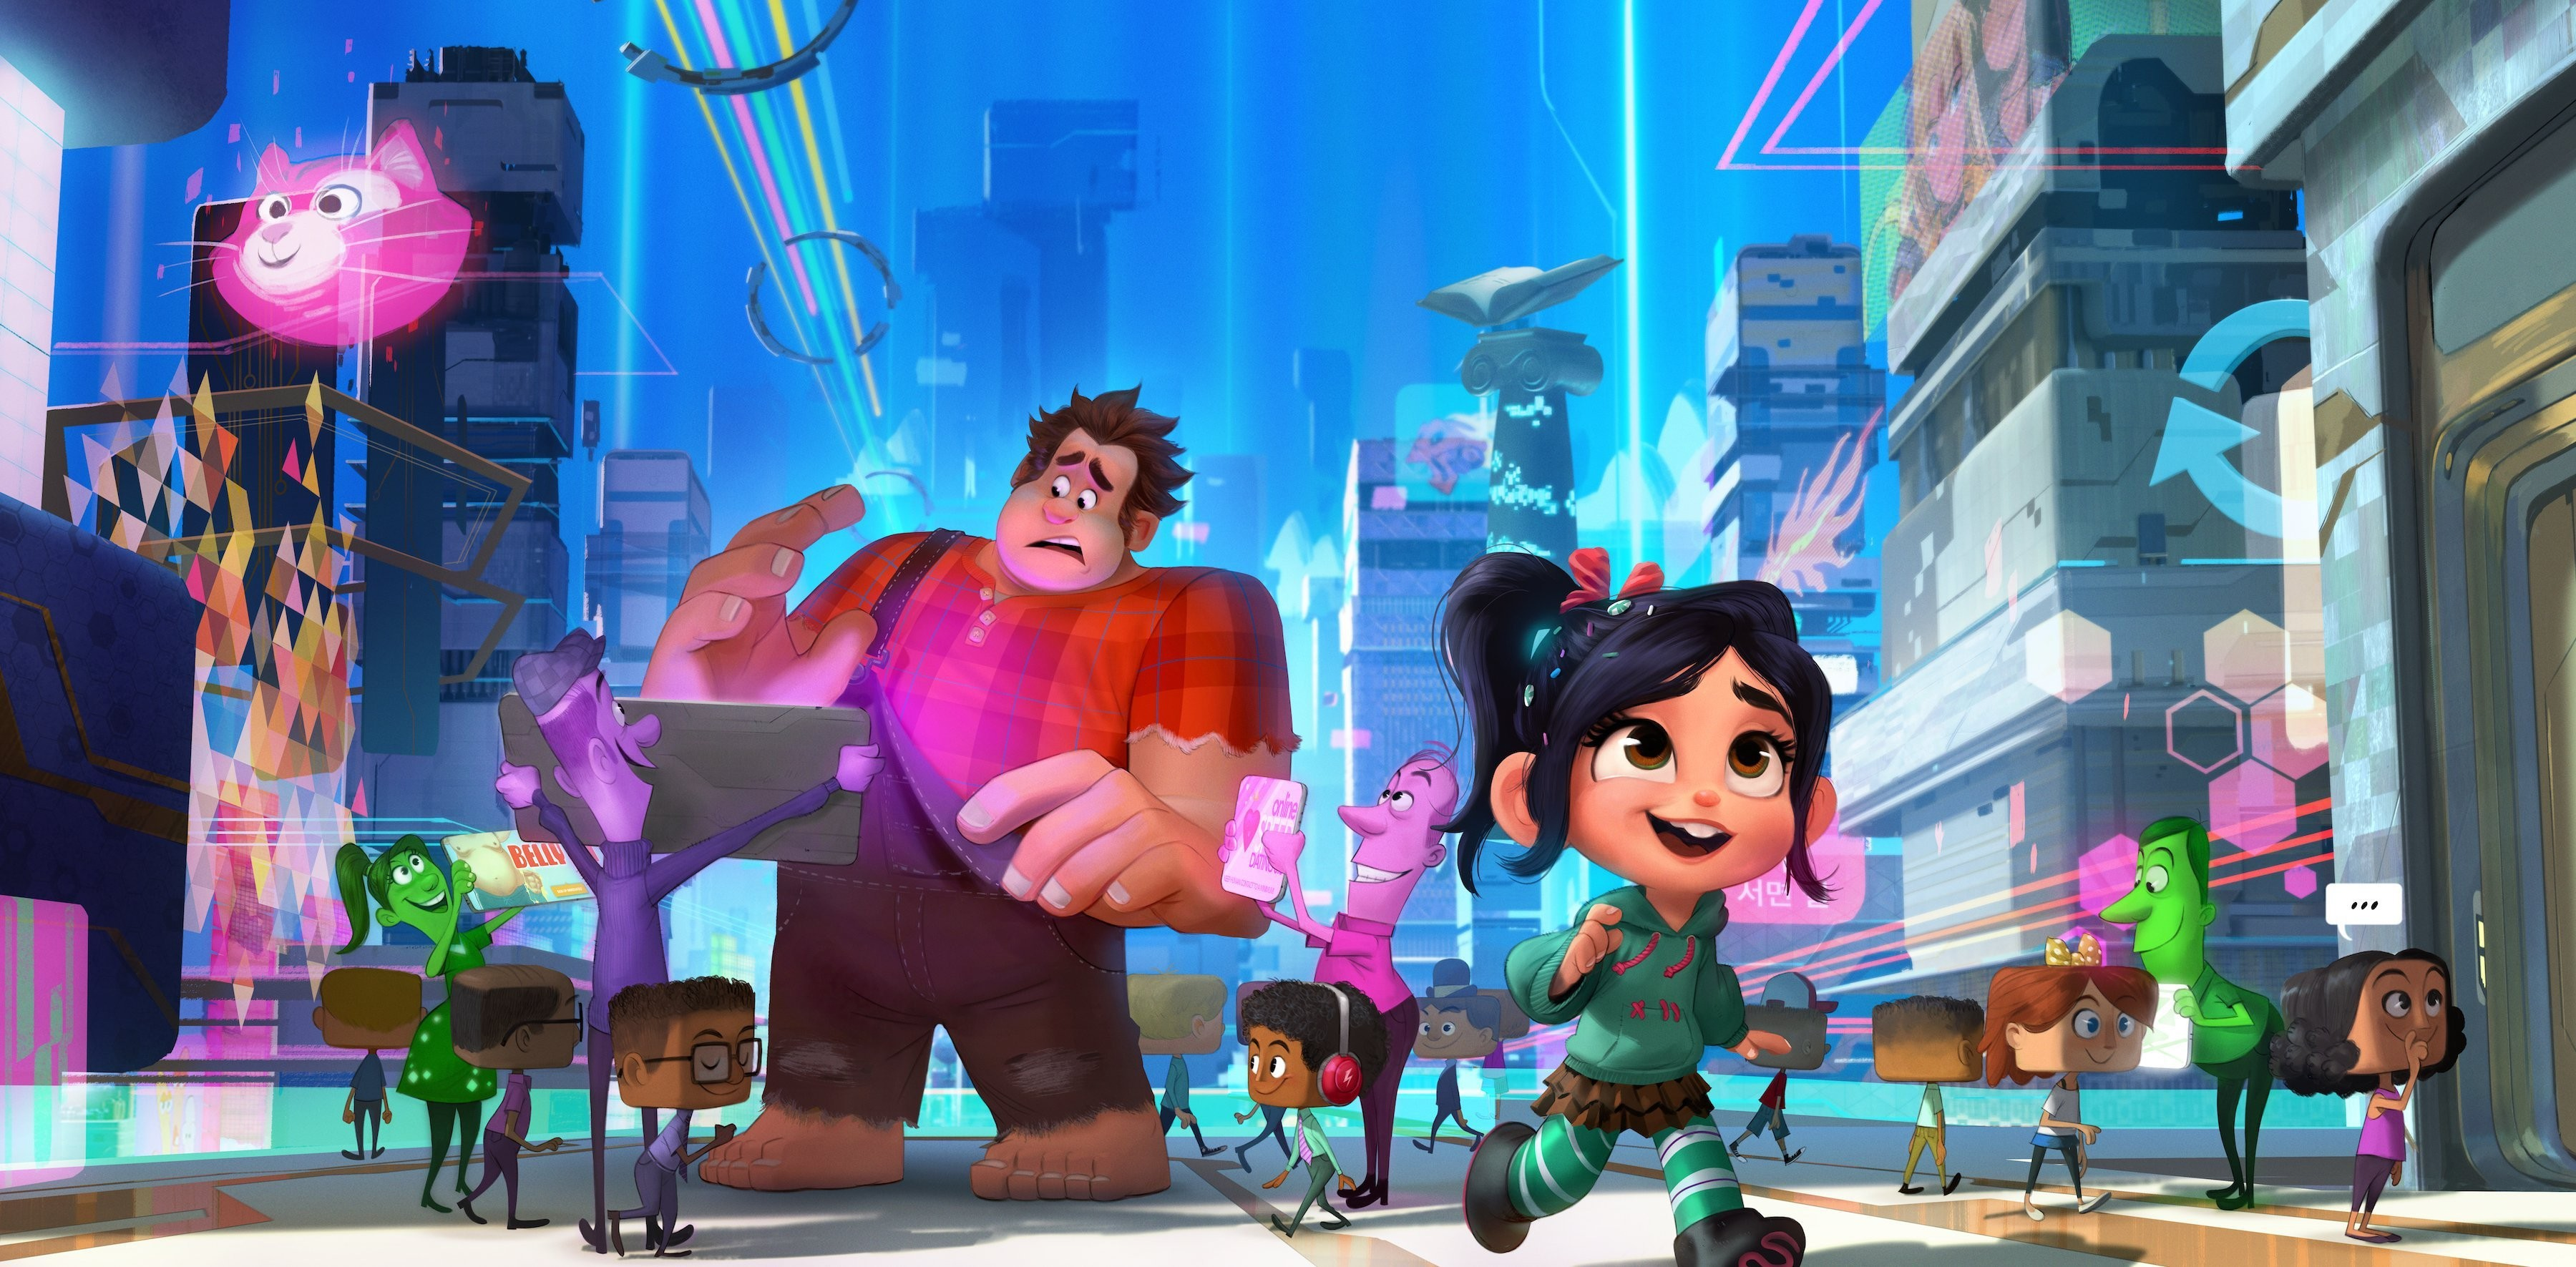 Wreck it ralph soundtrack download 320kbps threeseven.